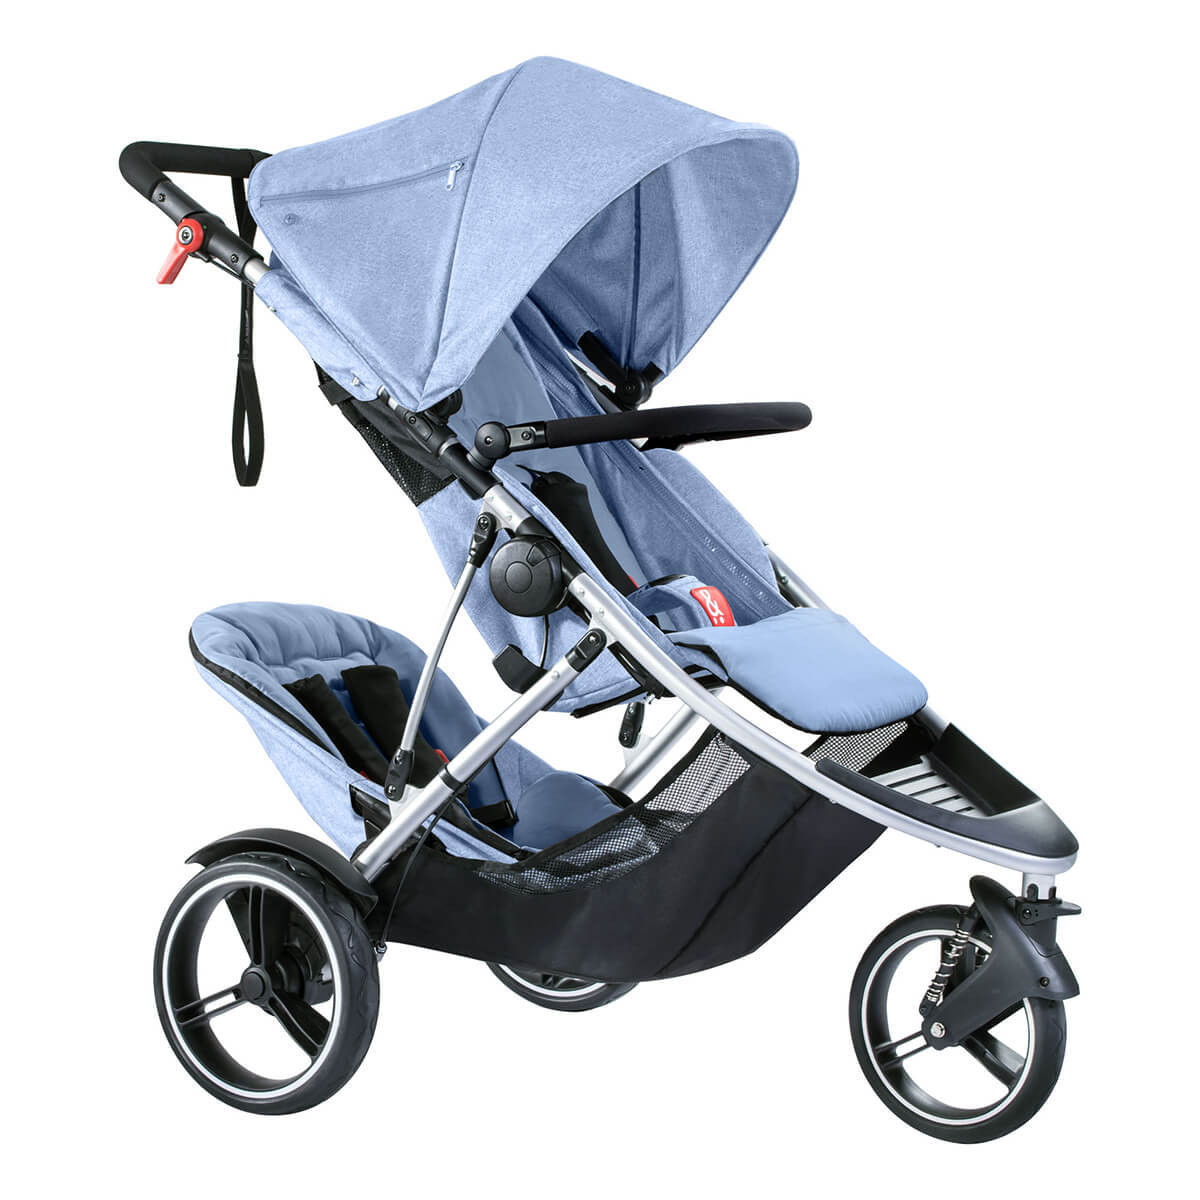 phil&teds Dash buggy Blue Marl  フィルアンドテッズ ダッシュ